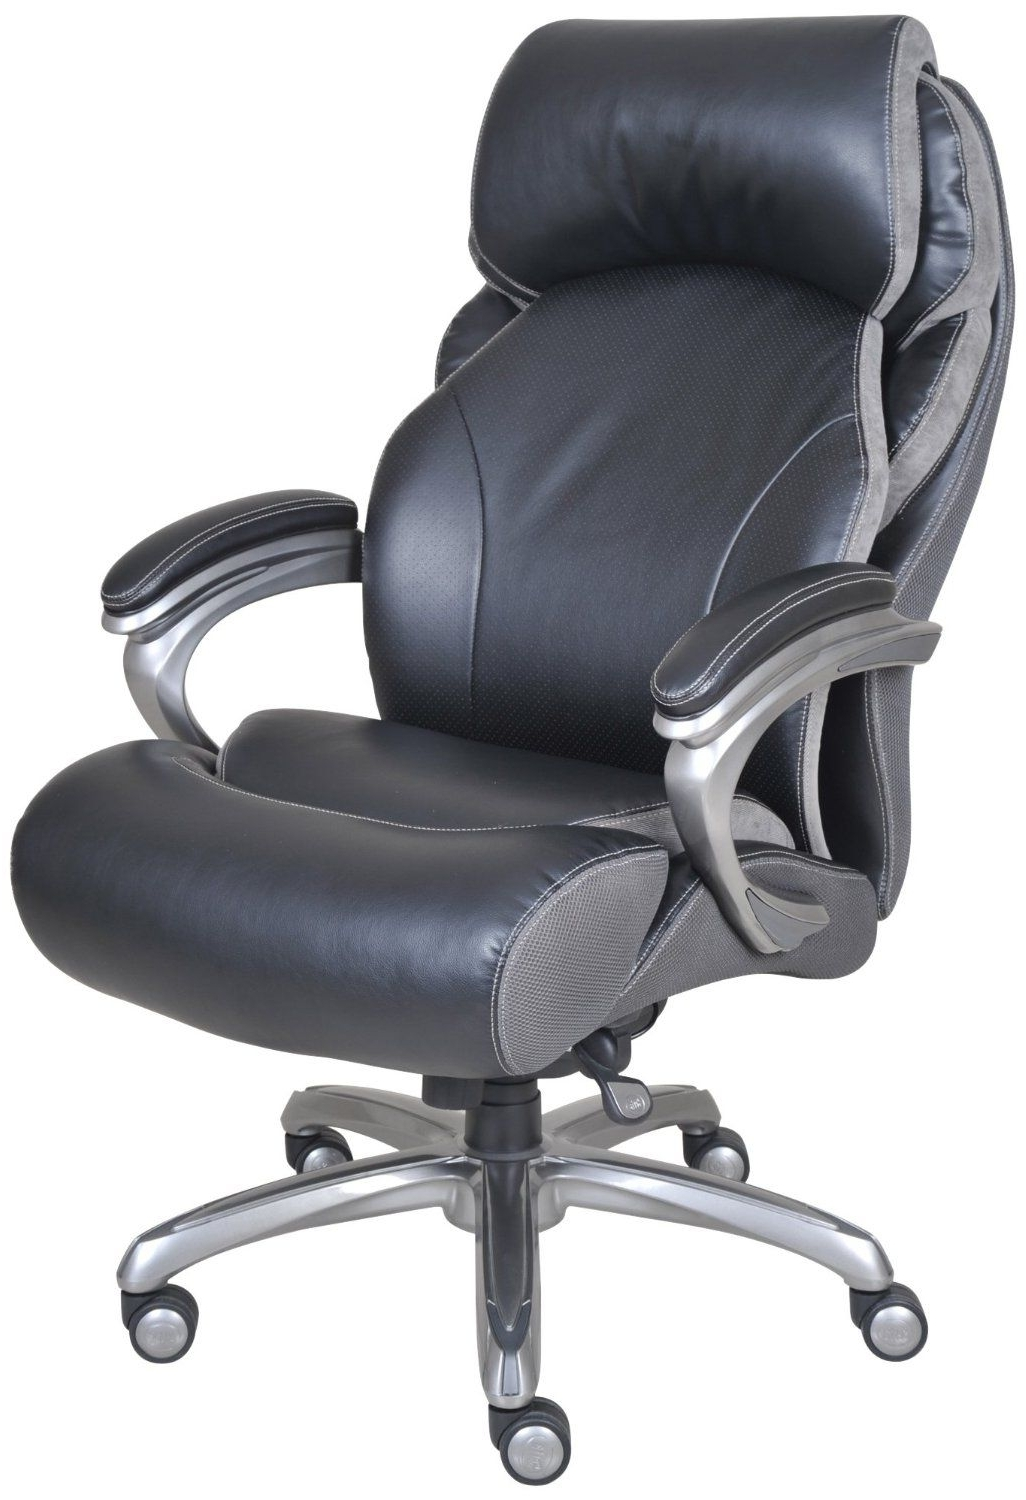 Http://productcreationlabs Intended For Xl Executive Office Chairs (View 9 of 20)